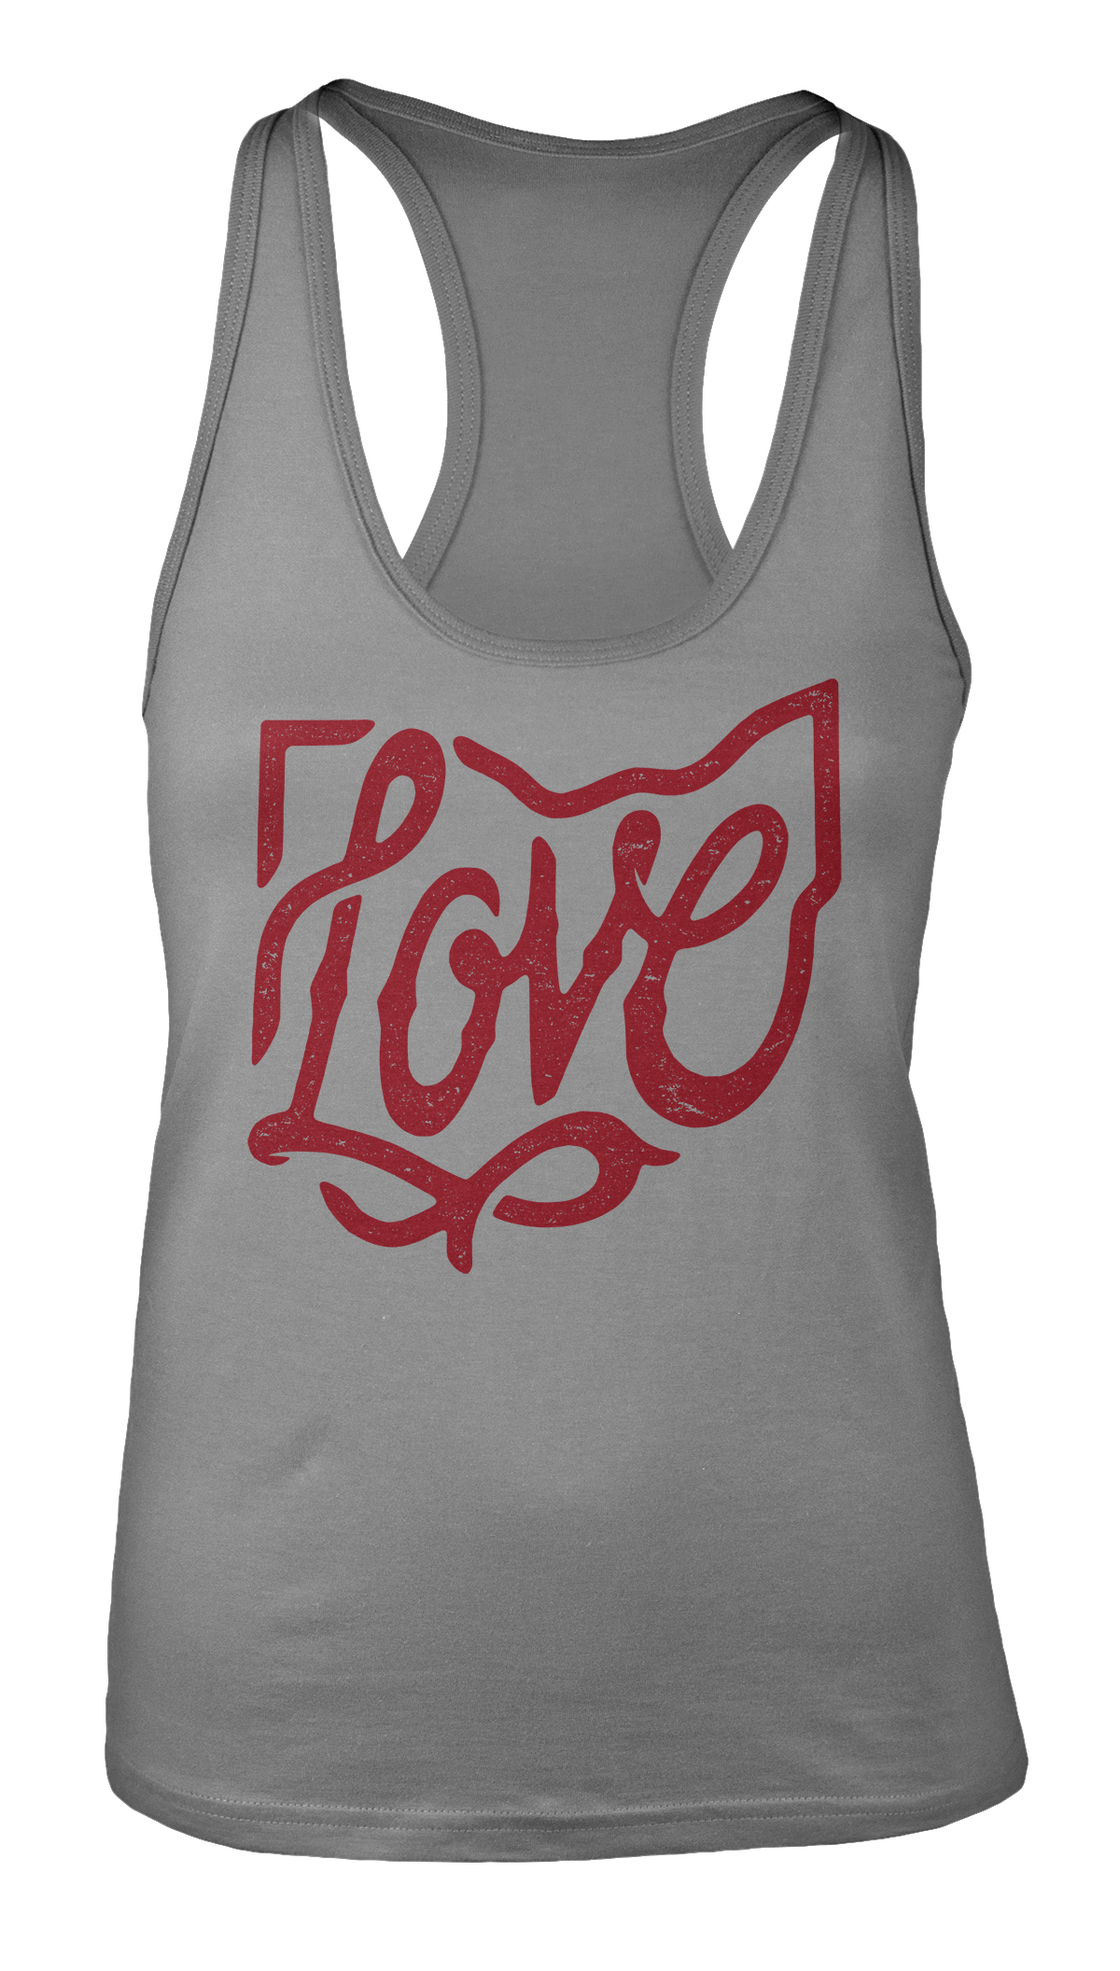 Image of Ohio Love Girls Tank Top